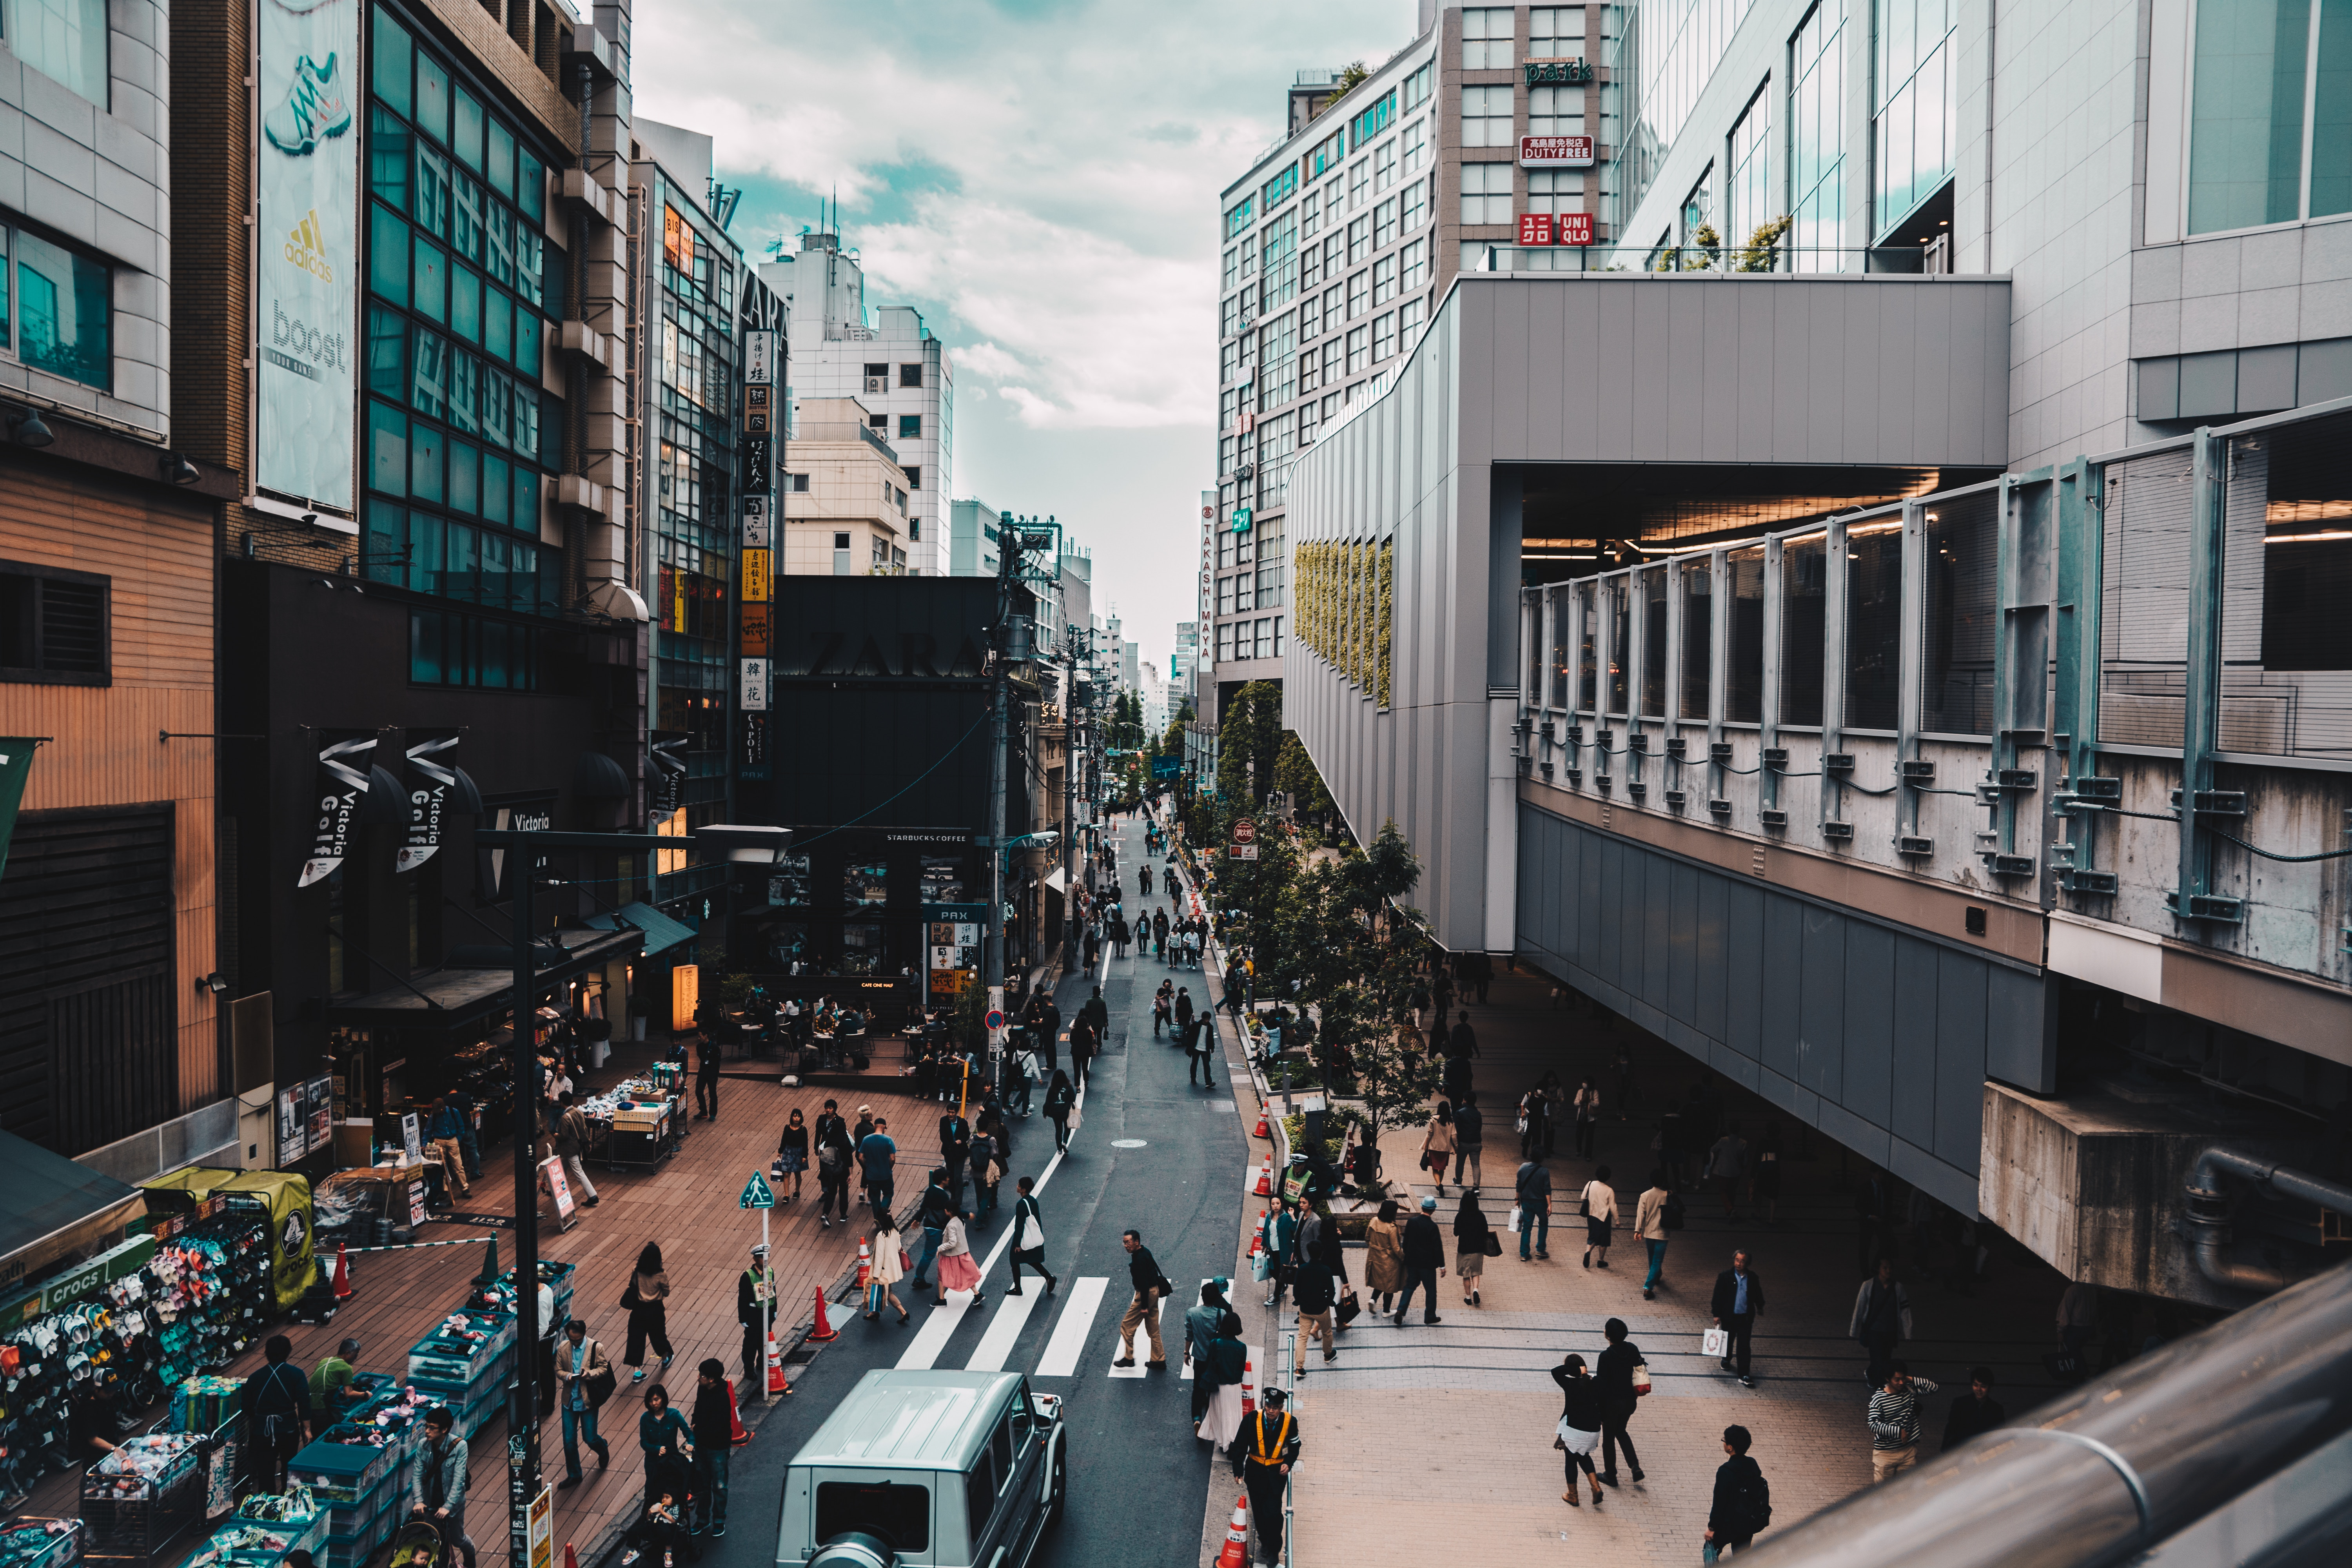 Streetscape in Tokyo. Image: Chris Chan/Unsplash